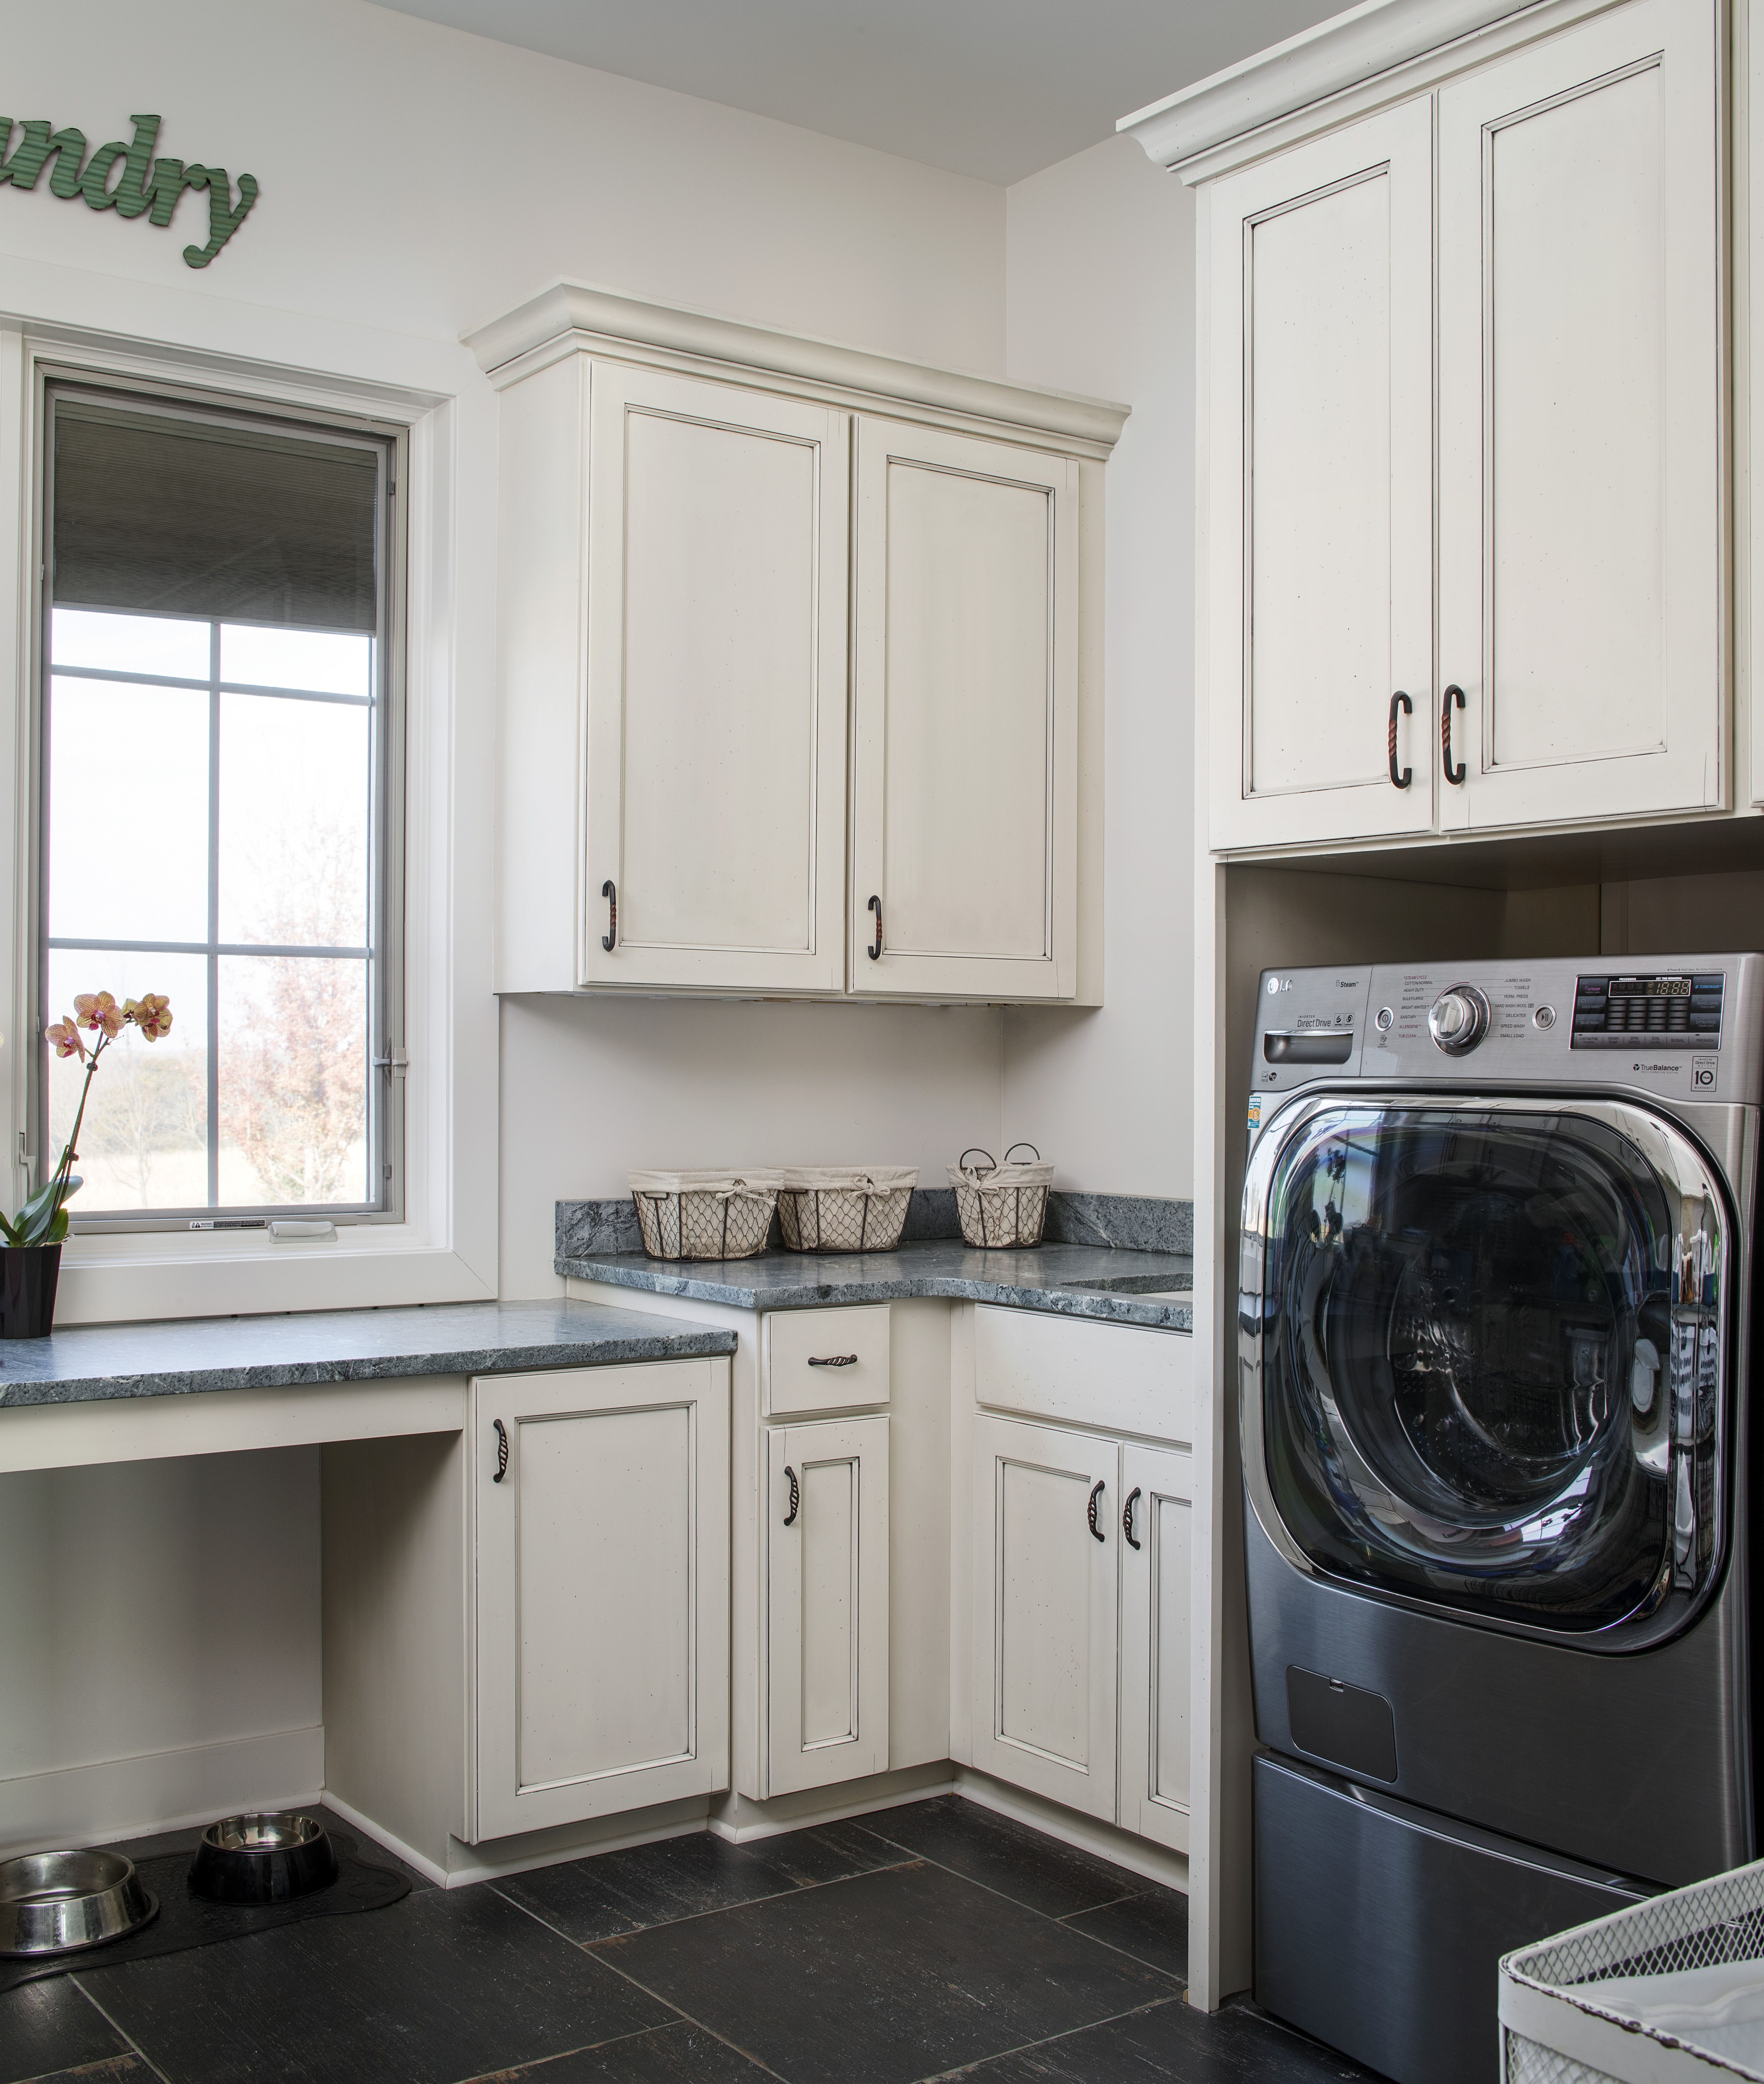 Laundry Room Remodel With Added Cabinets For Storage And Counter Space For Folding Laundry Room Remodel Quality Kitchen Cabinets Room Remodeling